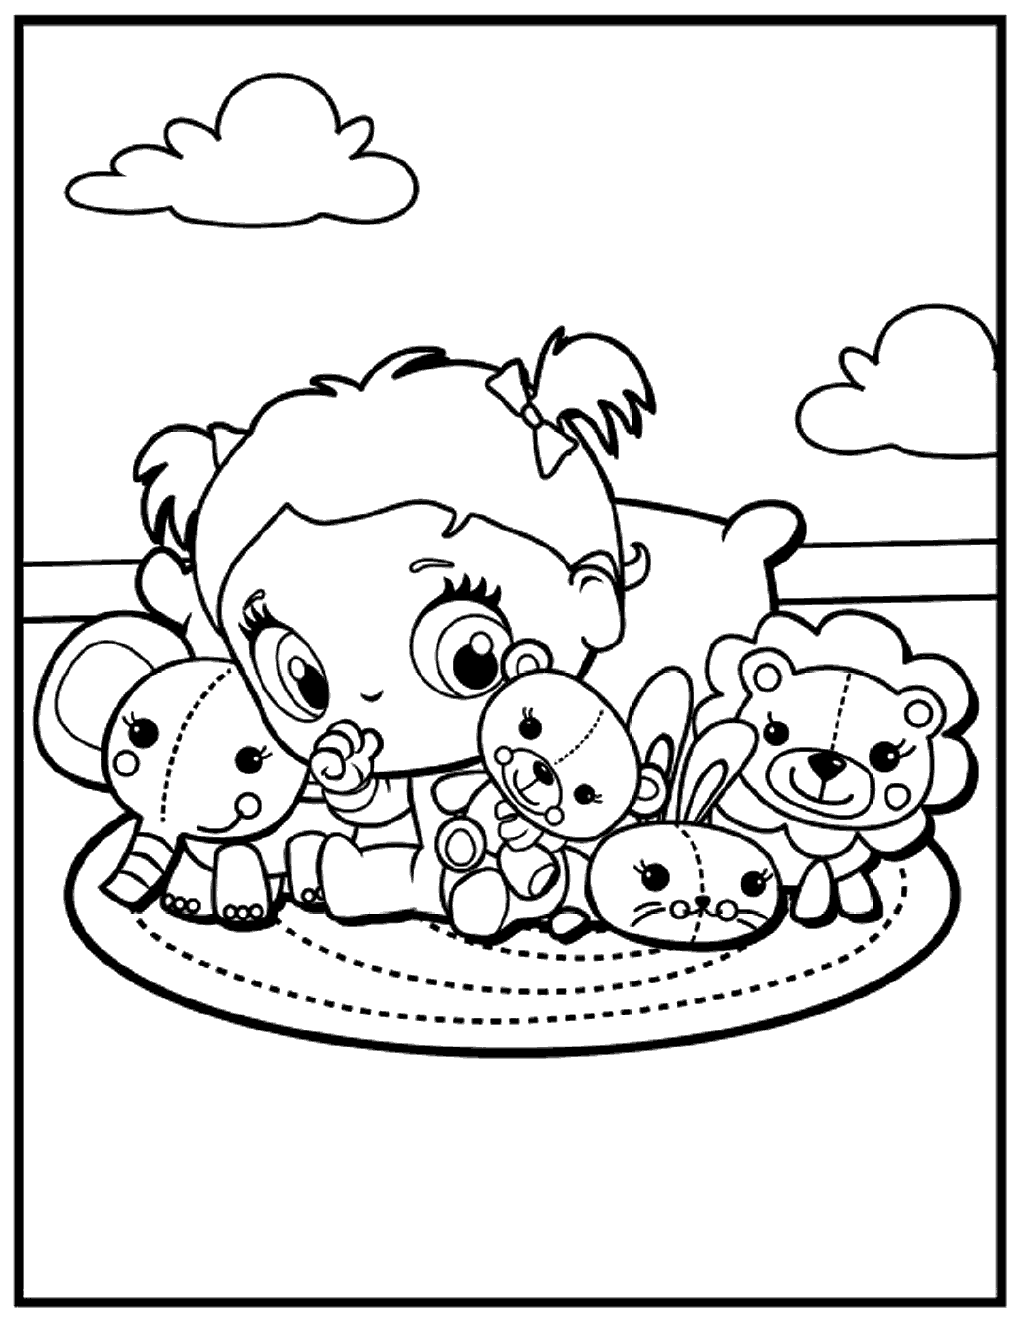 Kawaii Animal Coloring Pages At Getcolorings